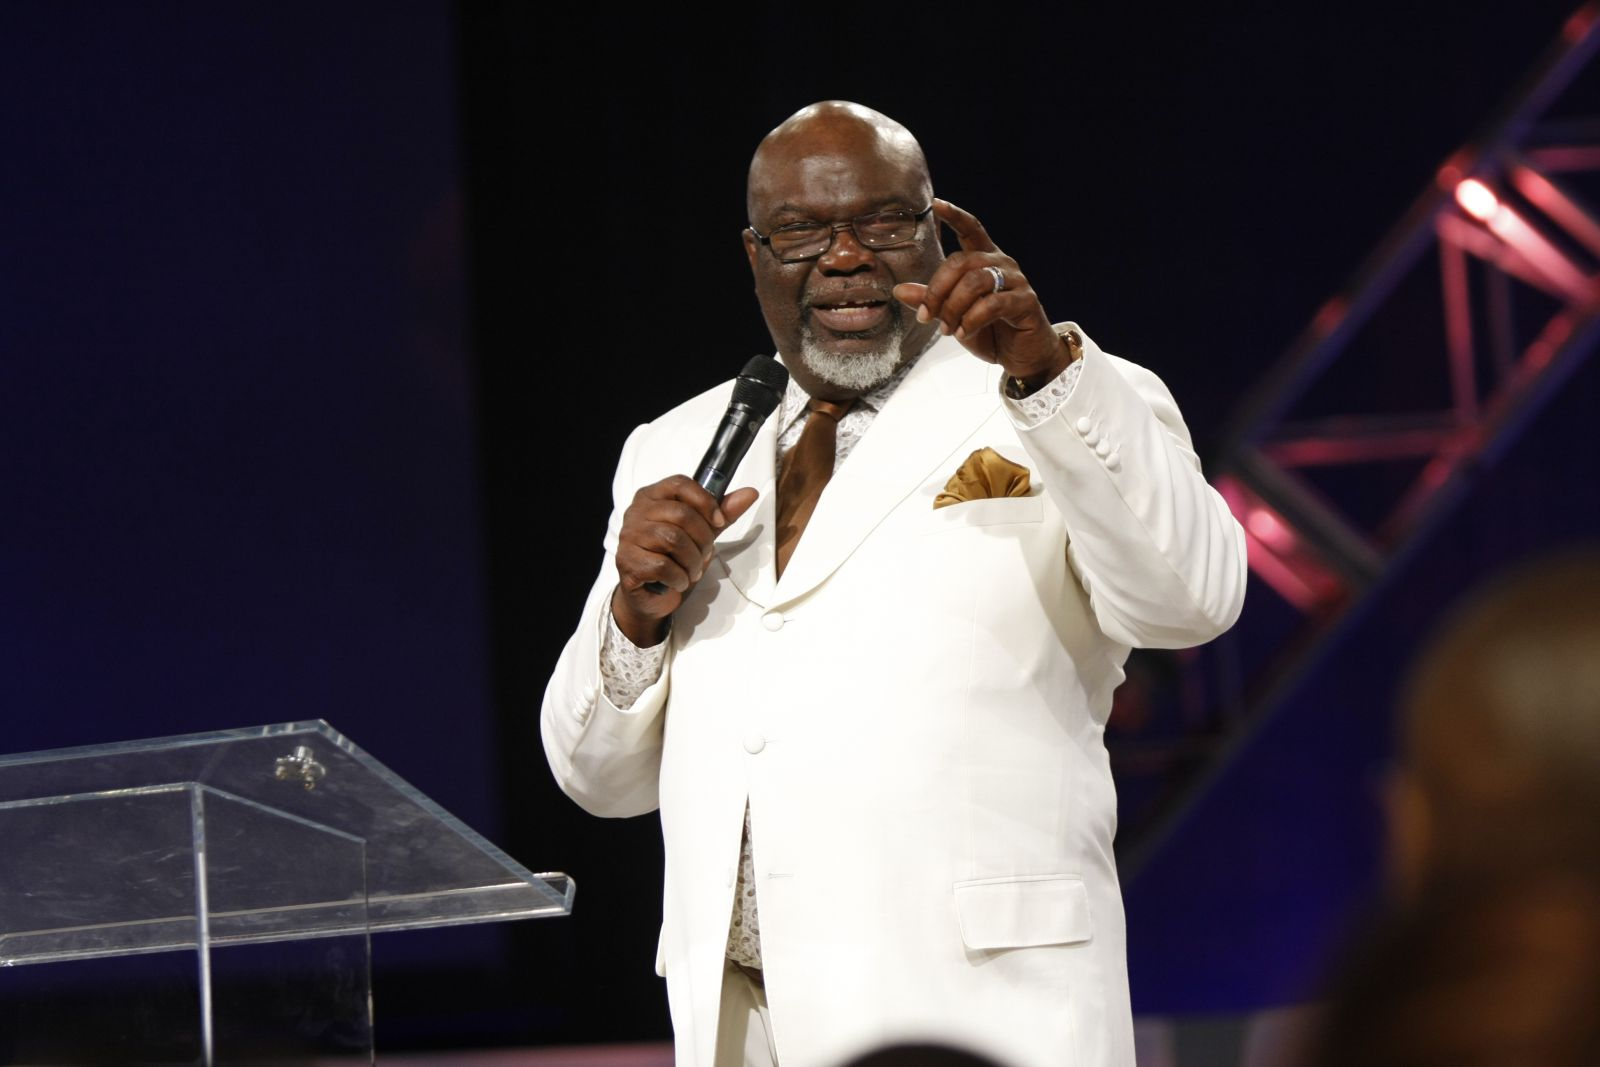 td jakes marriage counseling and relationship advice